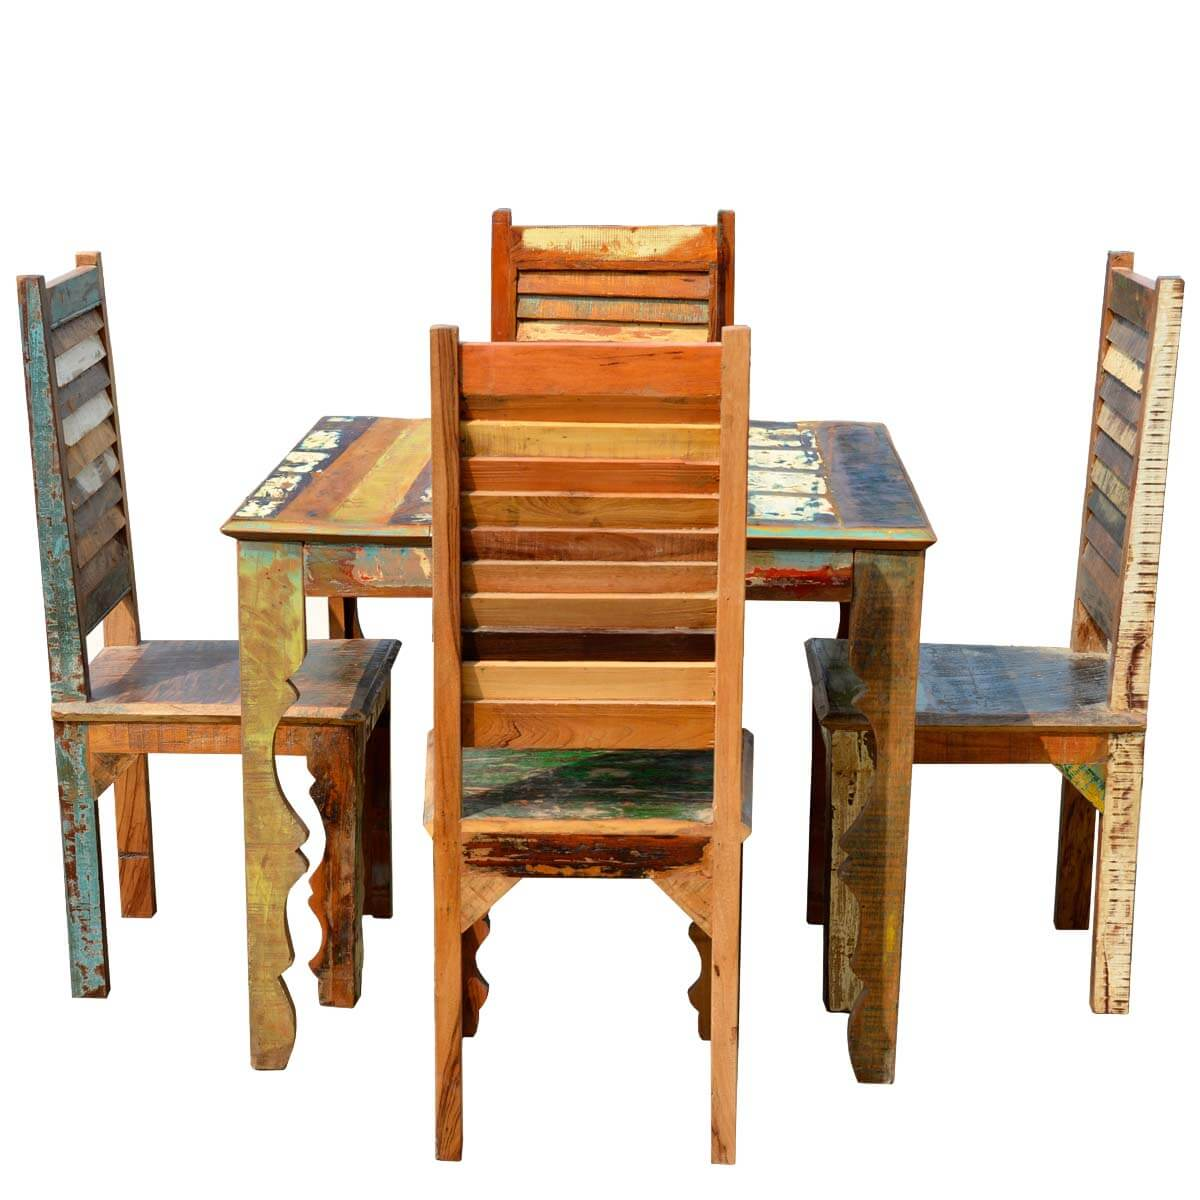 Rustic Reclaimed Wood Dining Table W Shutter Back Chairs For 4 People